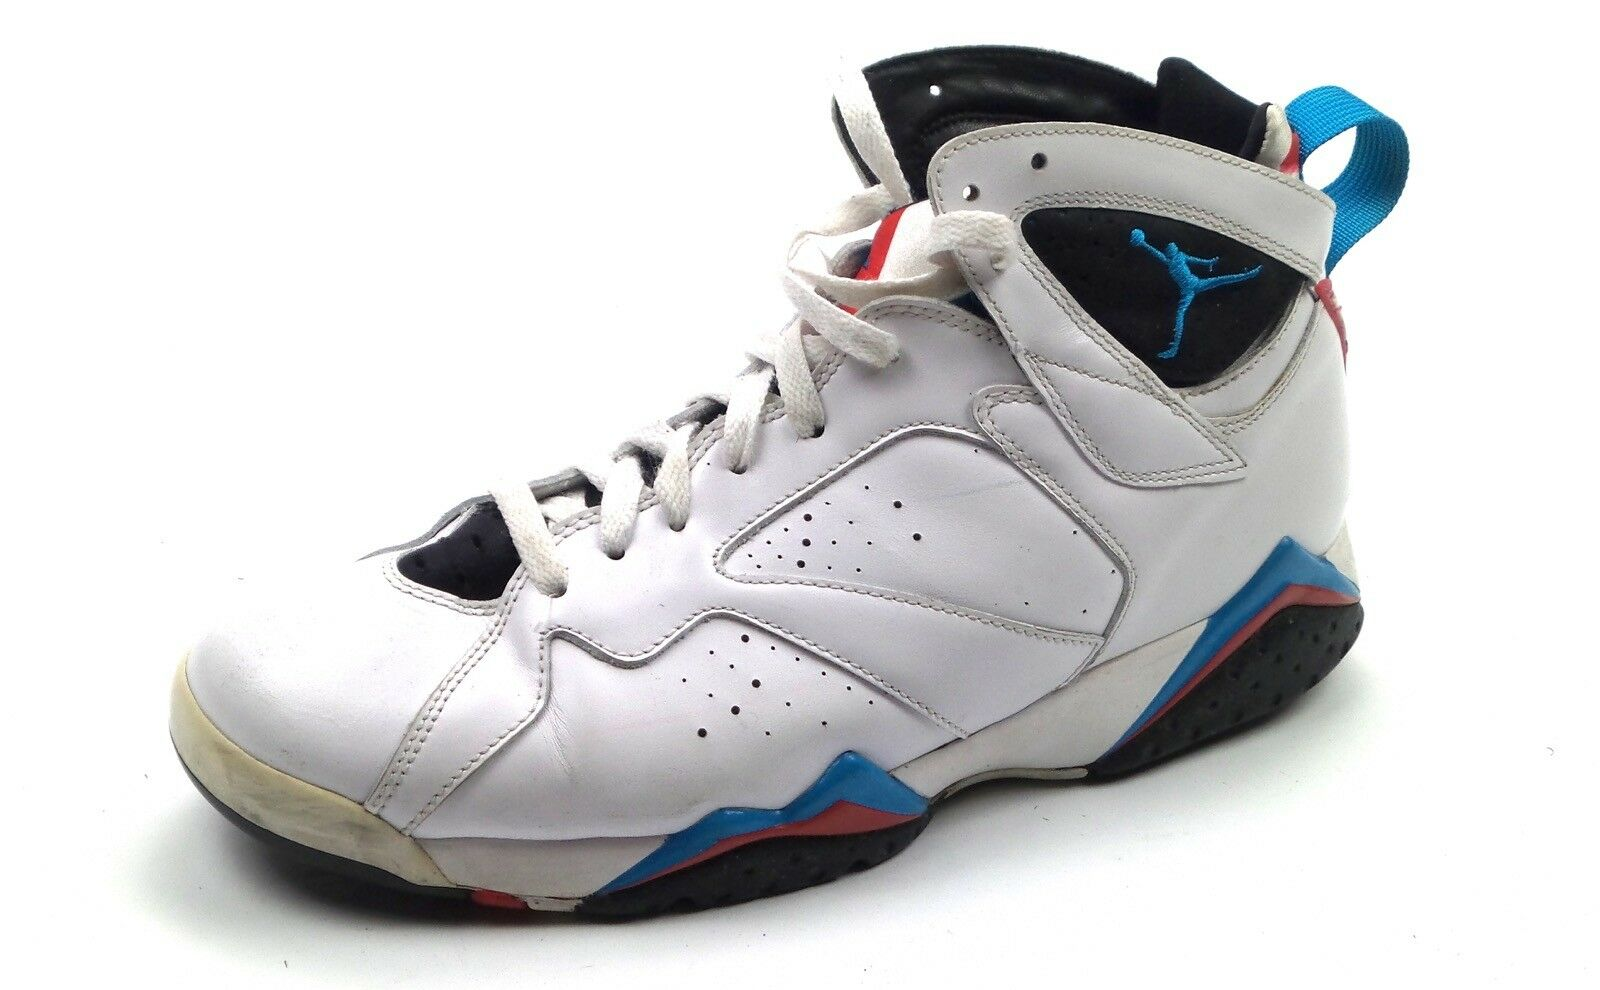 Nike Air Jordan 7 Retro Orion White blueee Black Infrared 304775-105 Sz 10